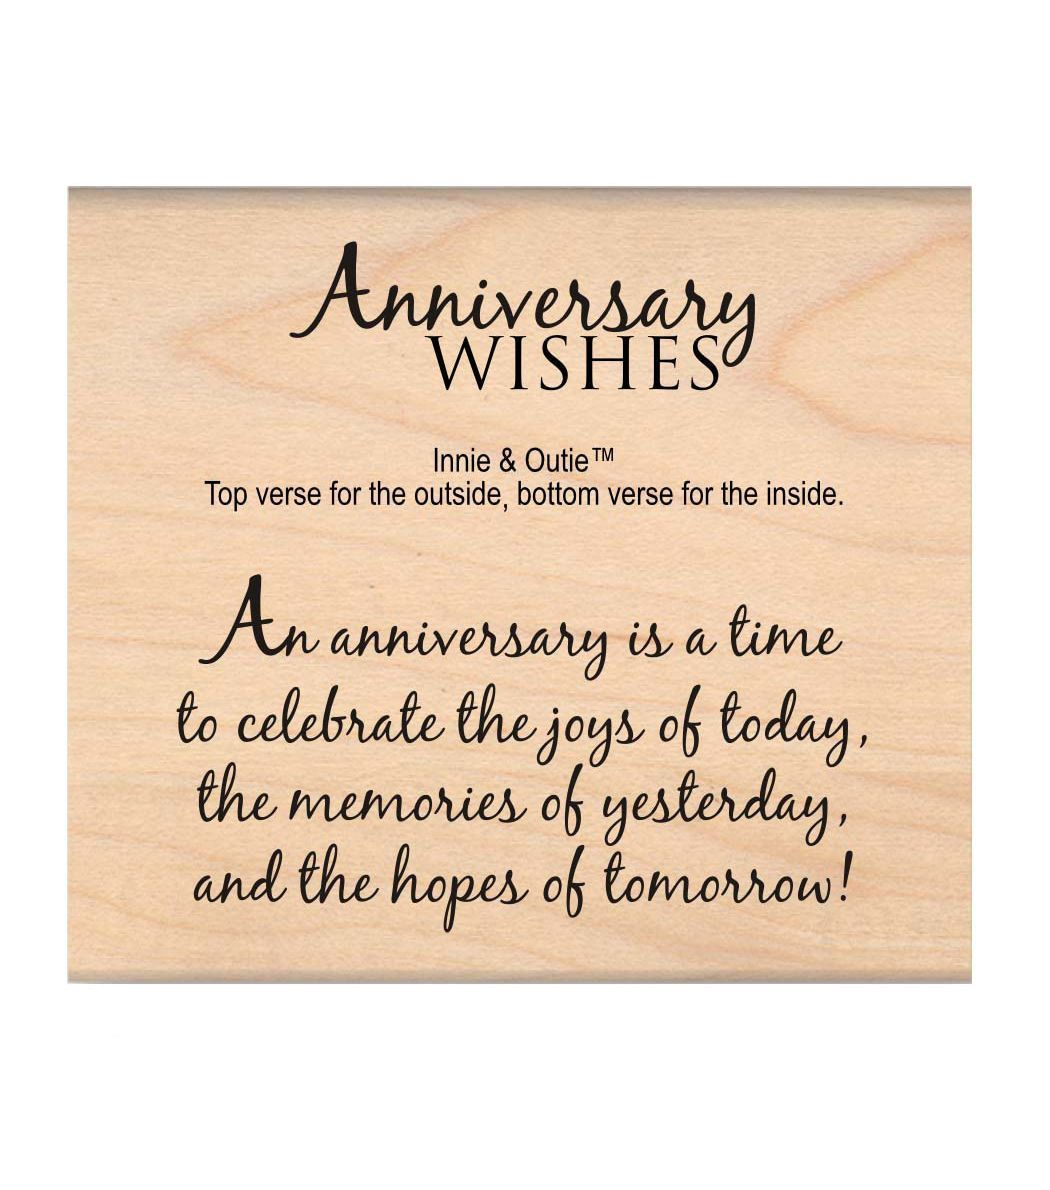 Mse My Sentiments Exactly Anniversary Wishes Mounted Stamp 2 5 X3